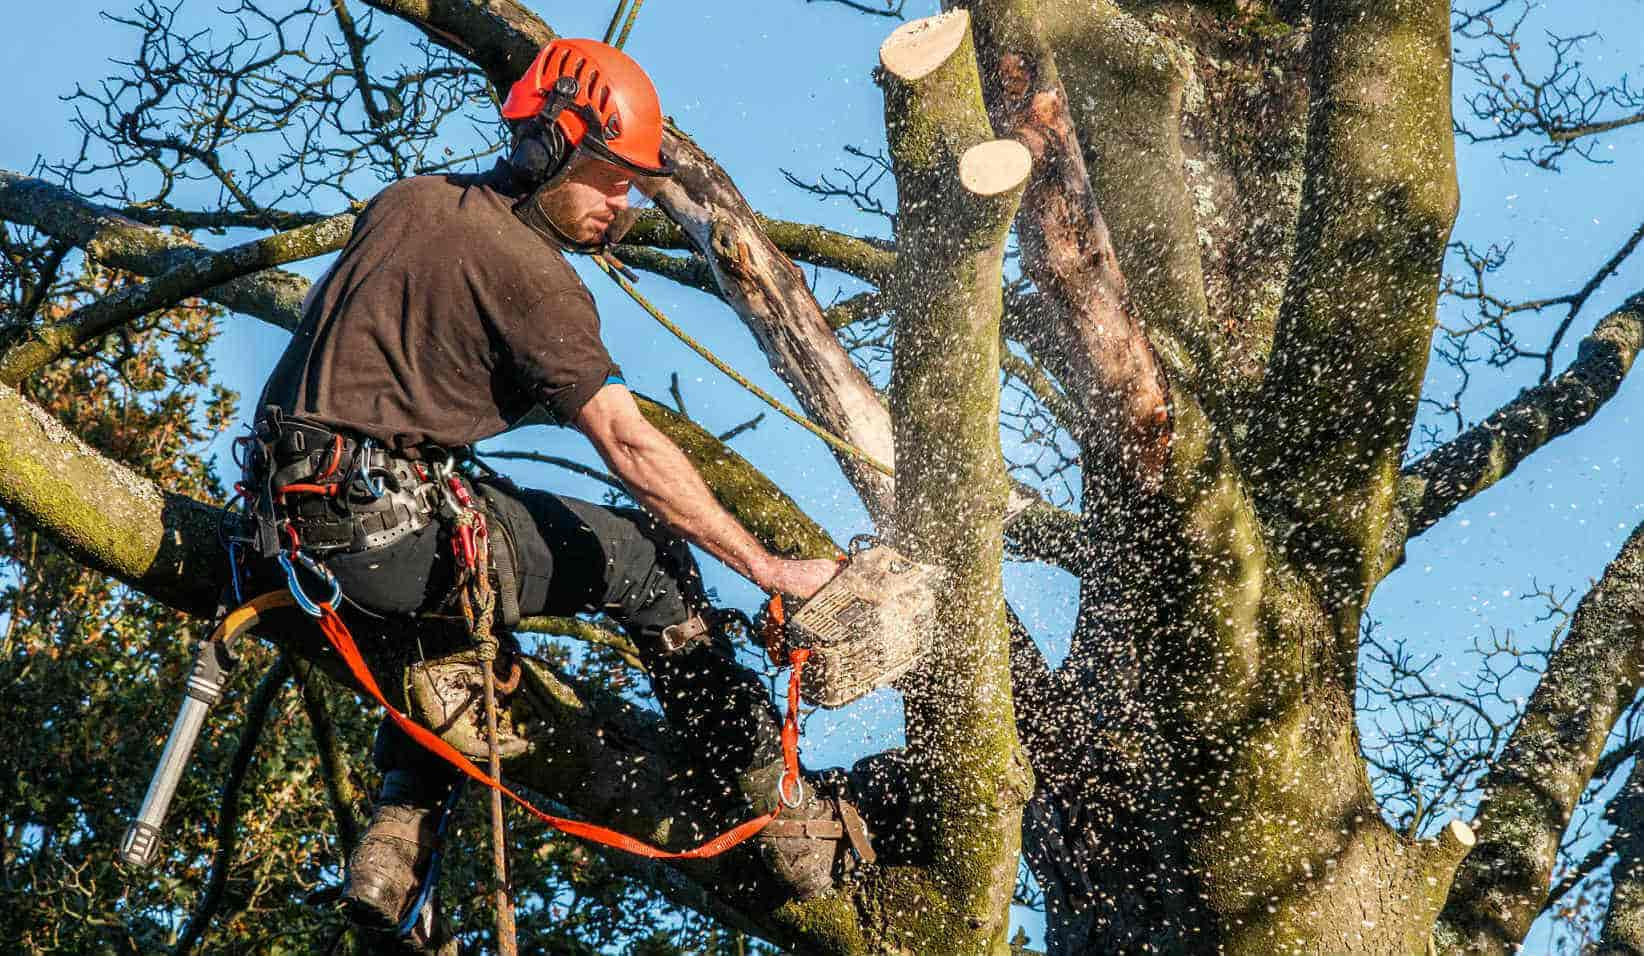 What Do I Need To Know Before Hiring A Tree Trimmer